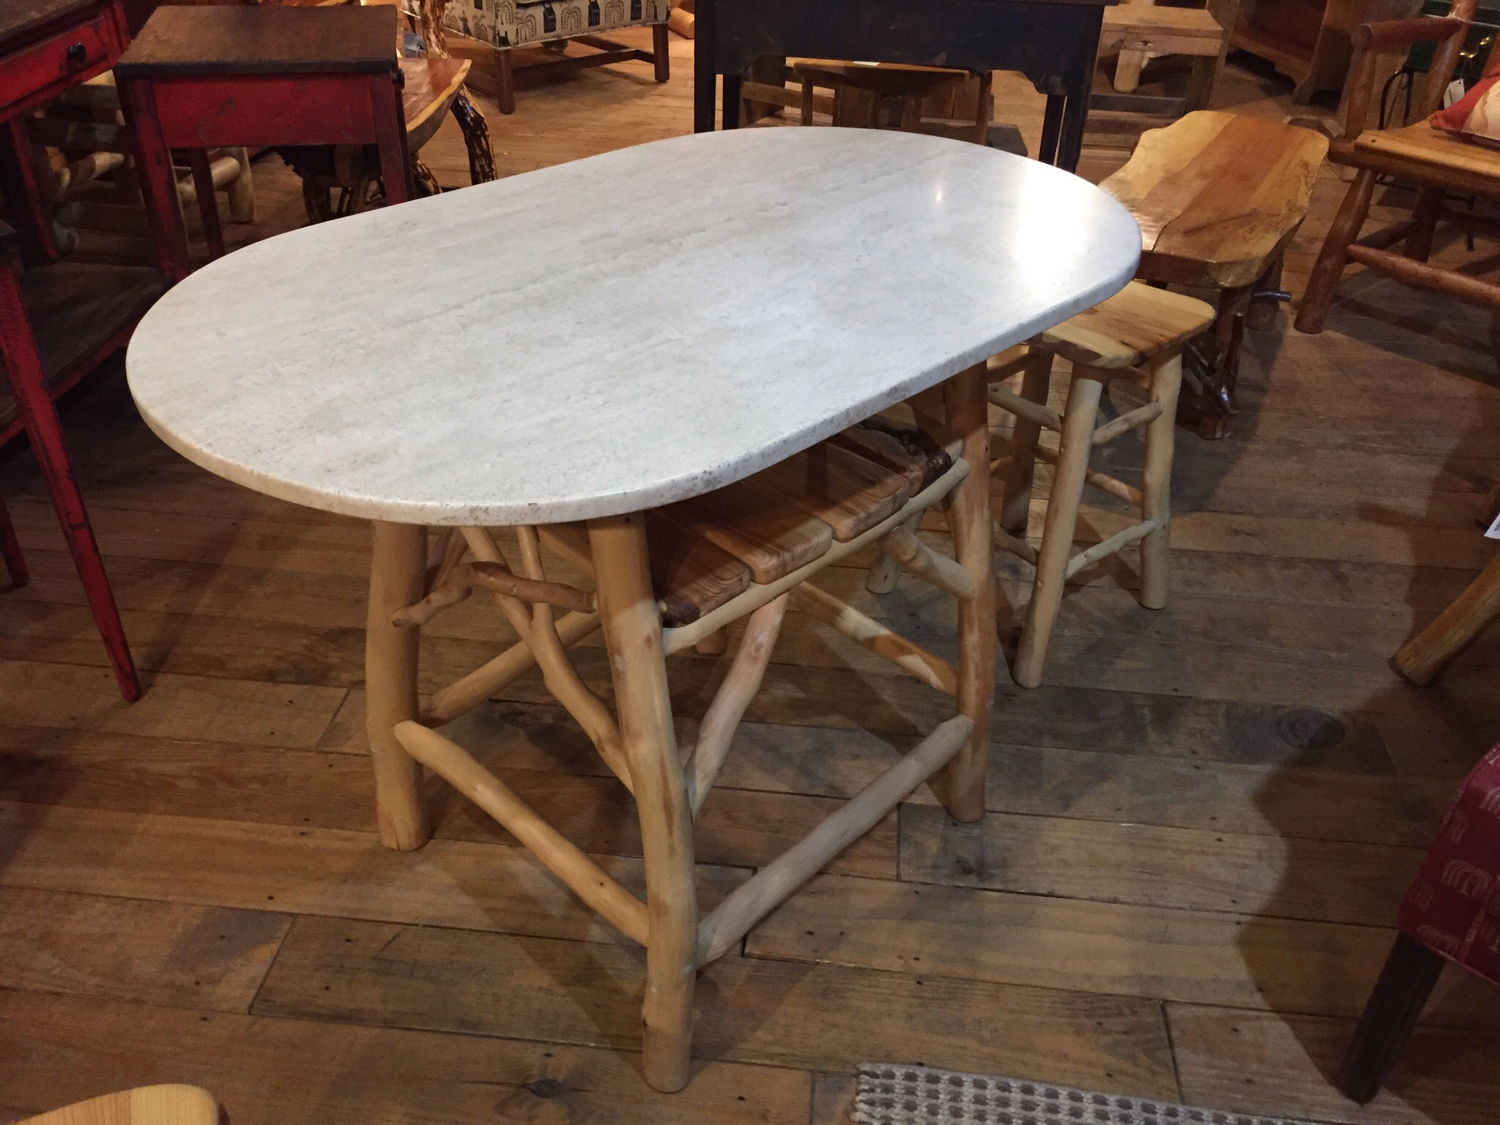 Game/Breakfast Table with Peeled Fruitwood Base